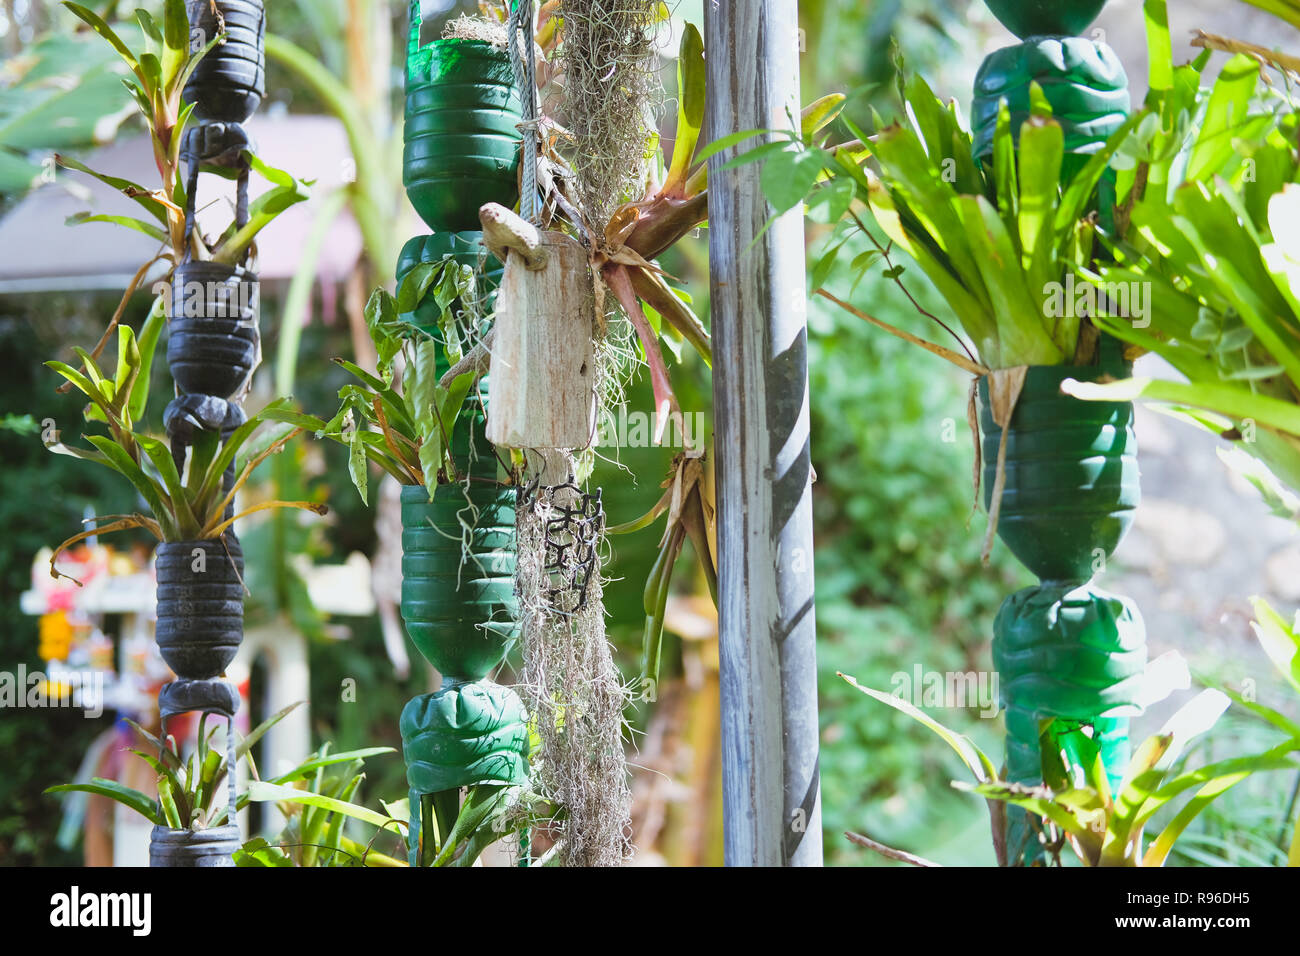 Plant Growing Vertically In Recycled Plastic Bottle Vertical